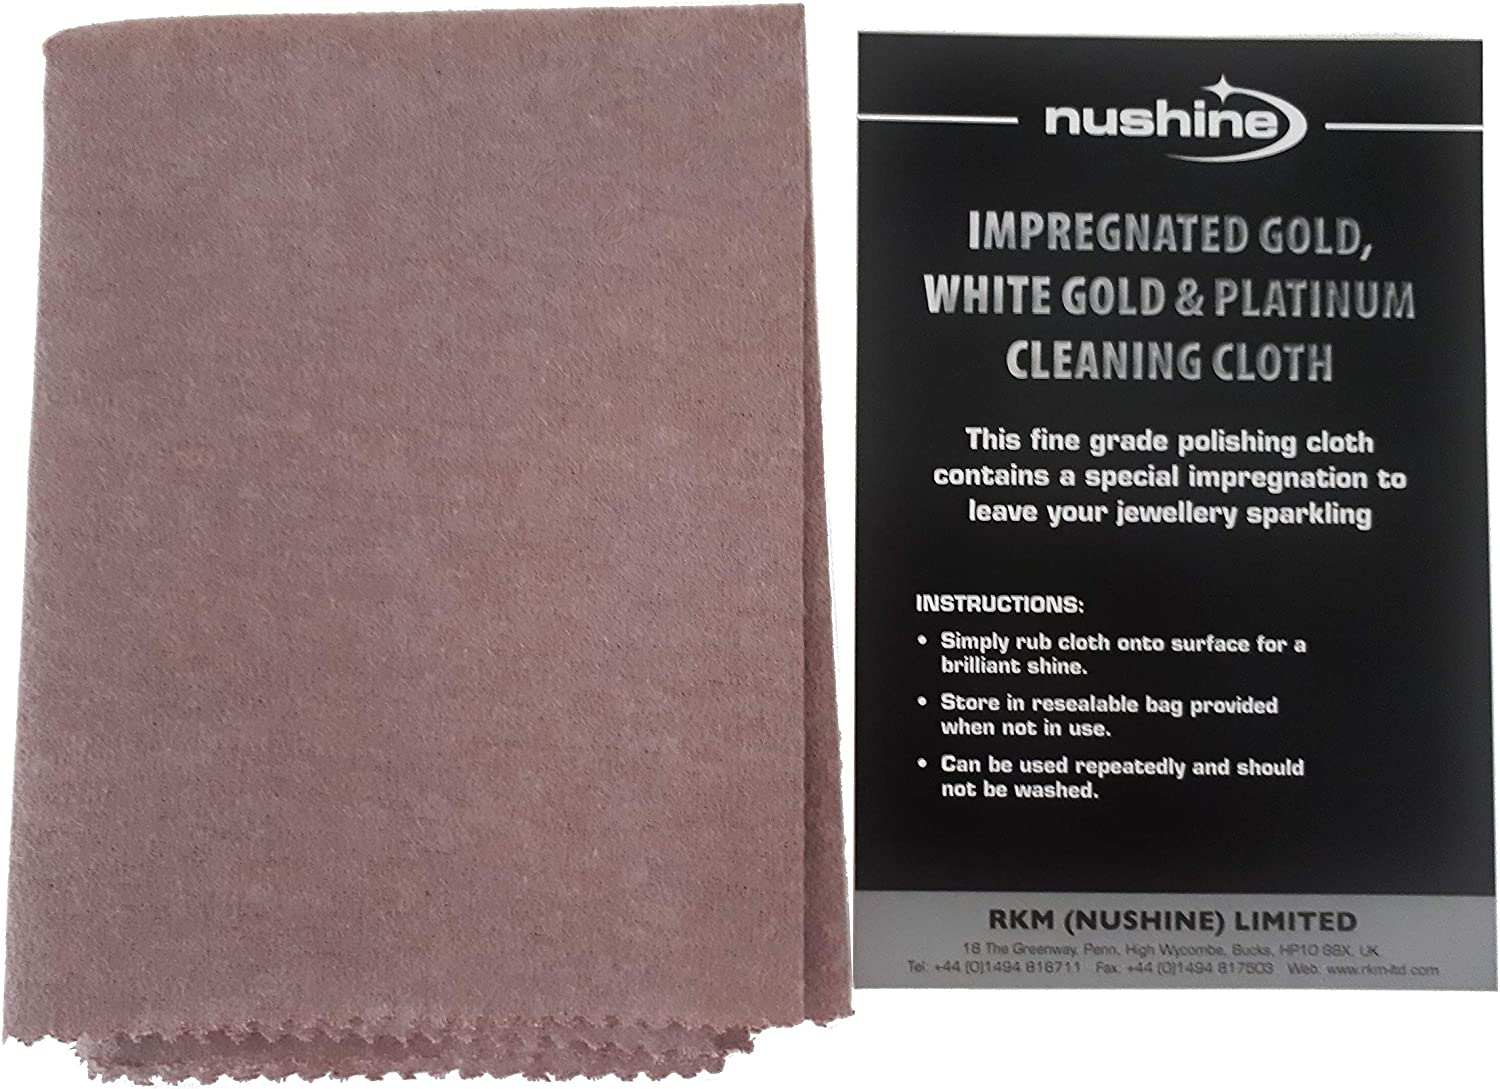 NUSHINE LARGE SILVER CLEANING CLOTH REMOVES TARNISH FROM YOUR SILVER WITH EASE